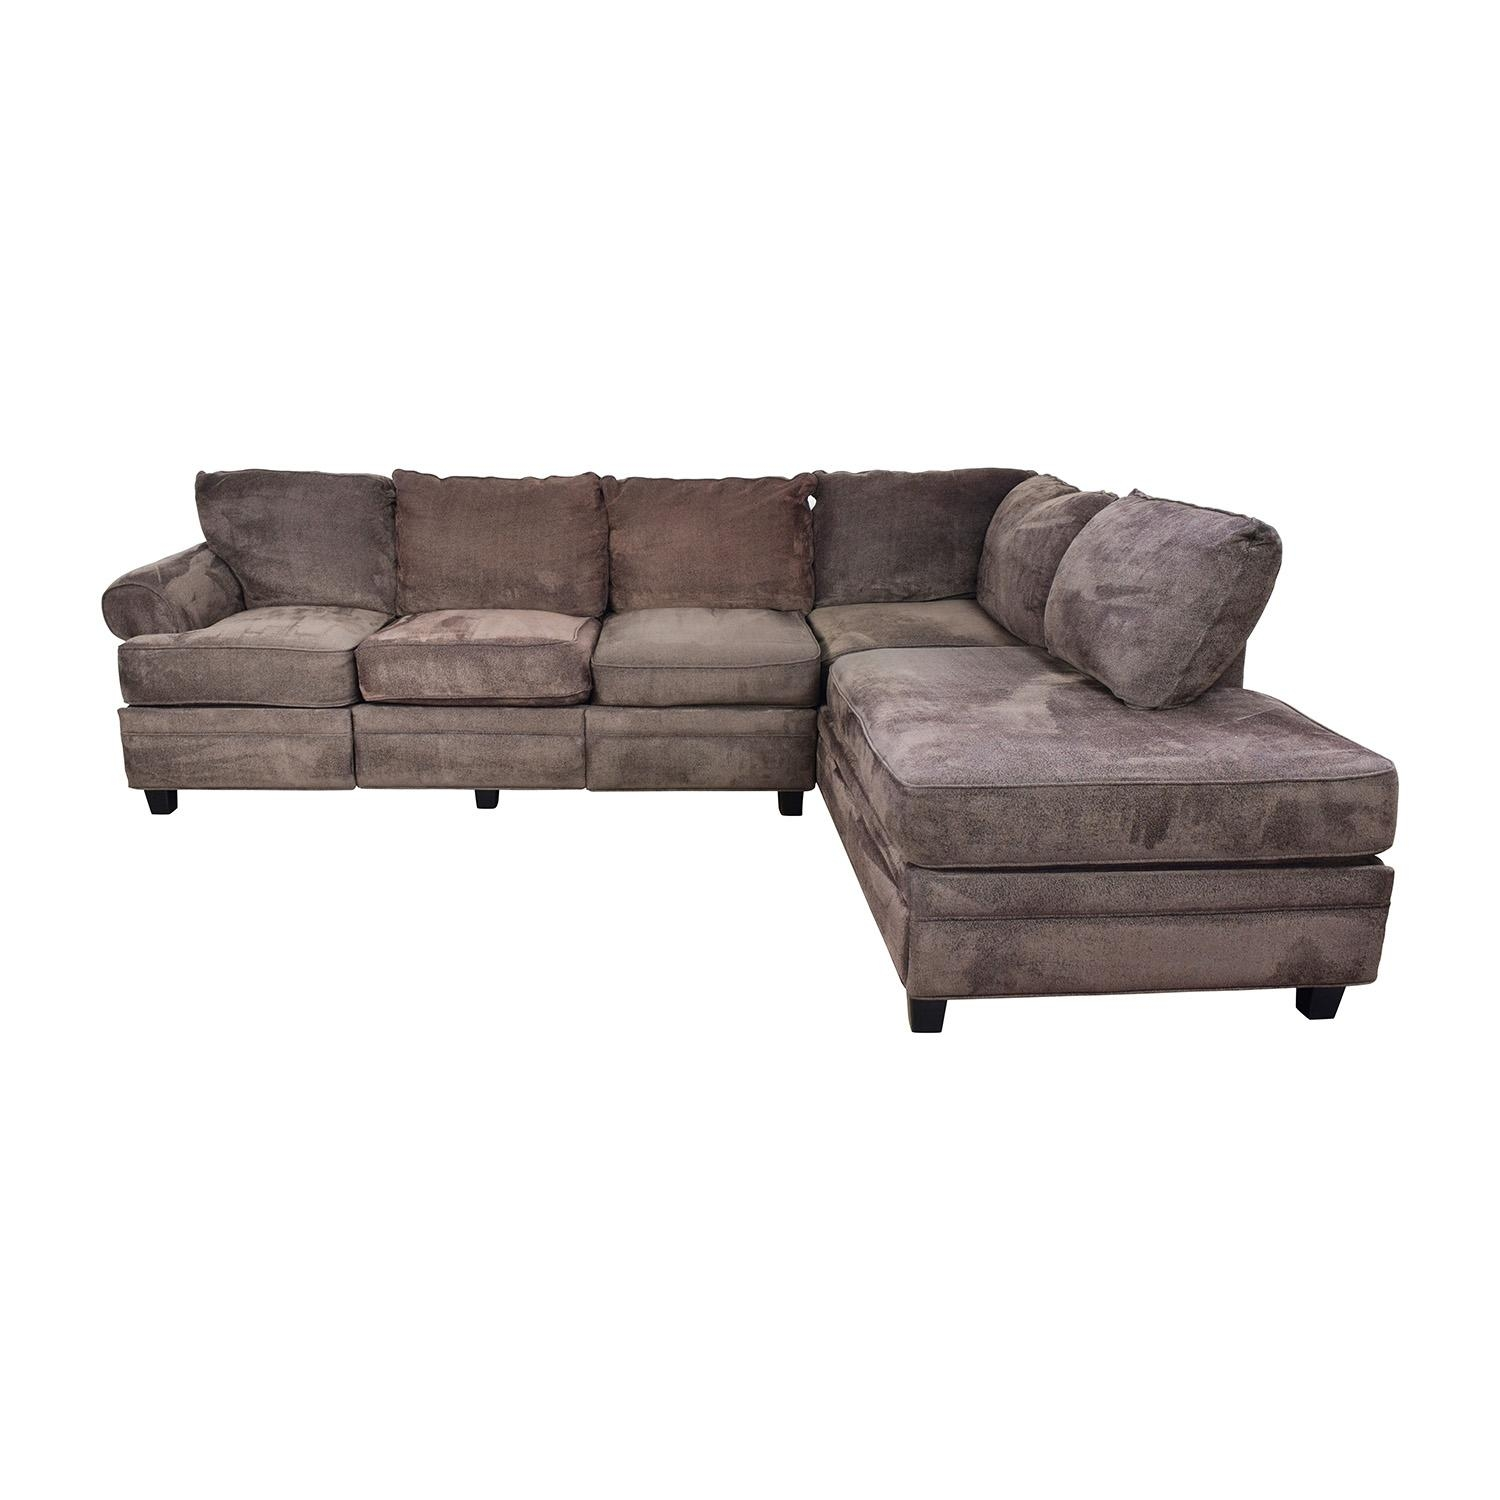 55% Off – Bob's Furniture Bob's Furniture Brown Sectional With Pertaining To Used Sectionals (View 15 of 20)